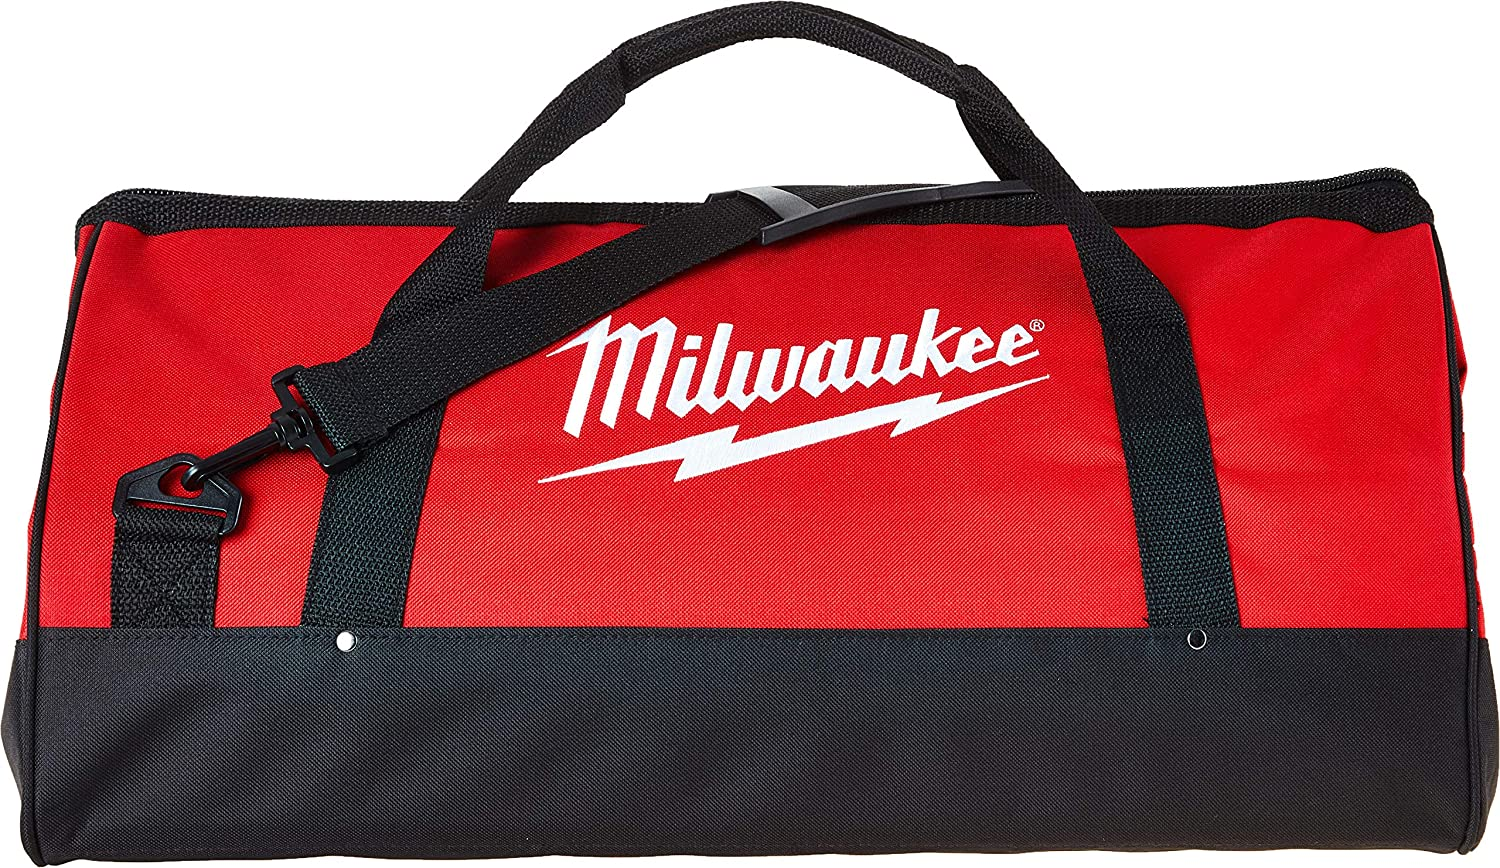 Milwaukee Bag 23x12x12nch Canvas best Tool Bag